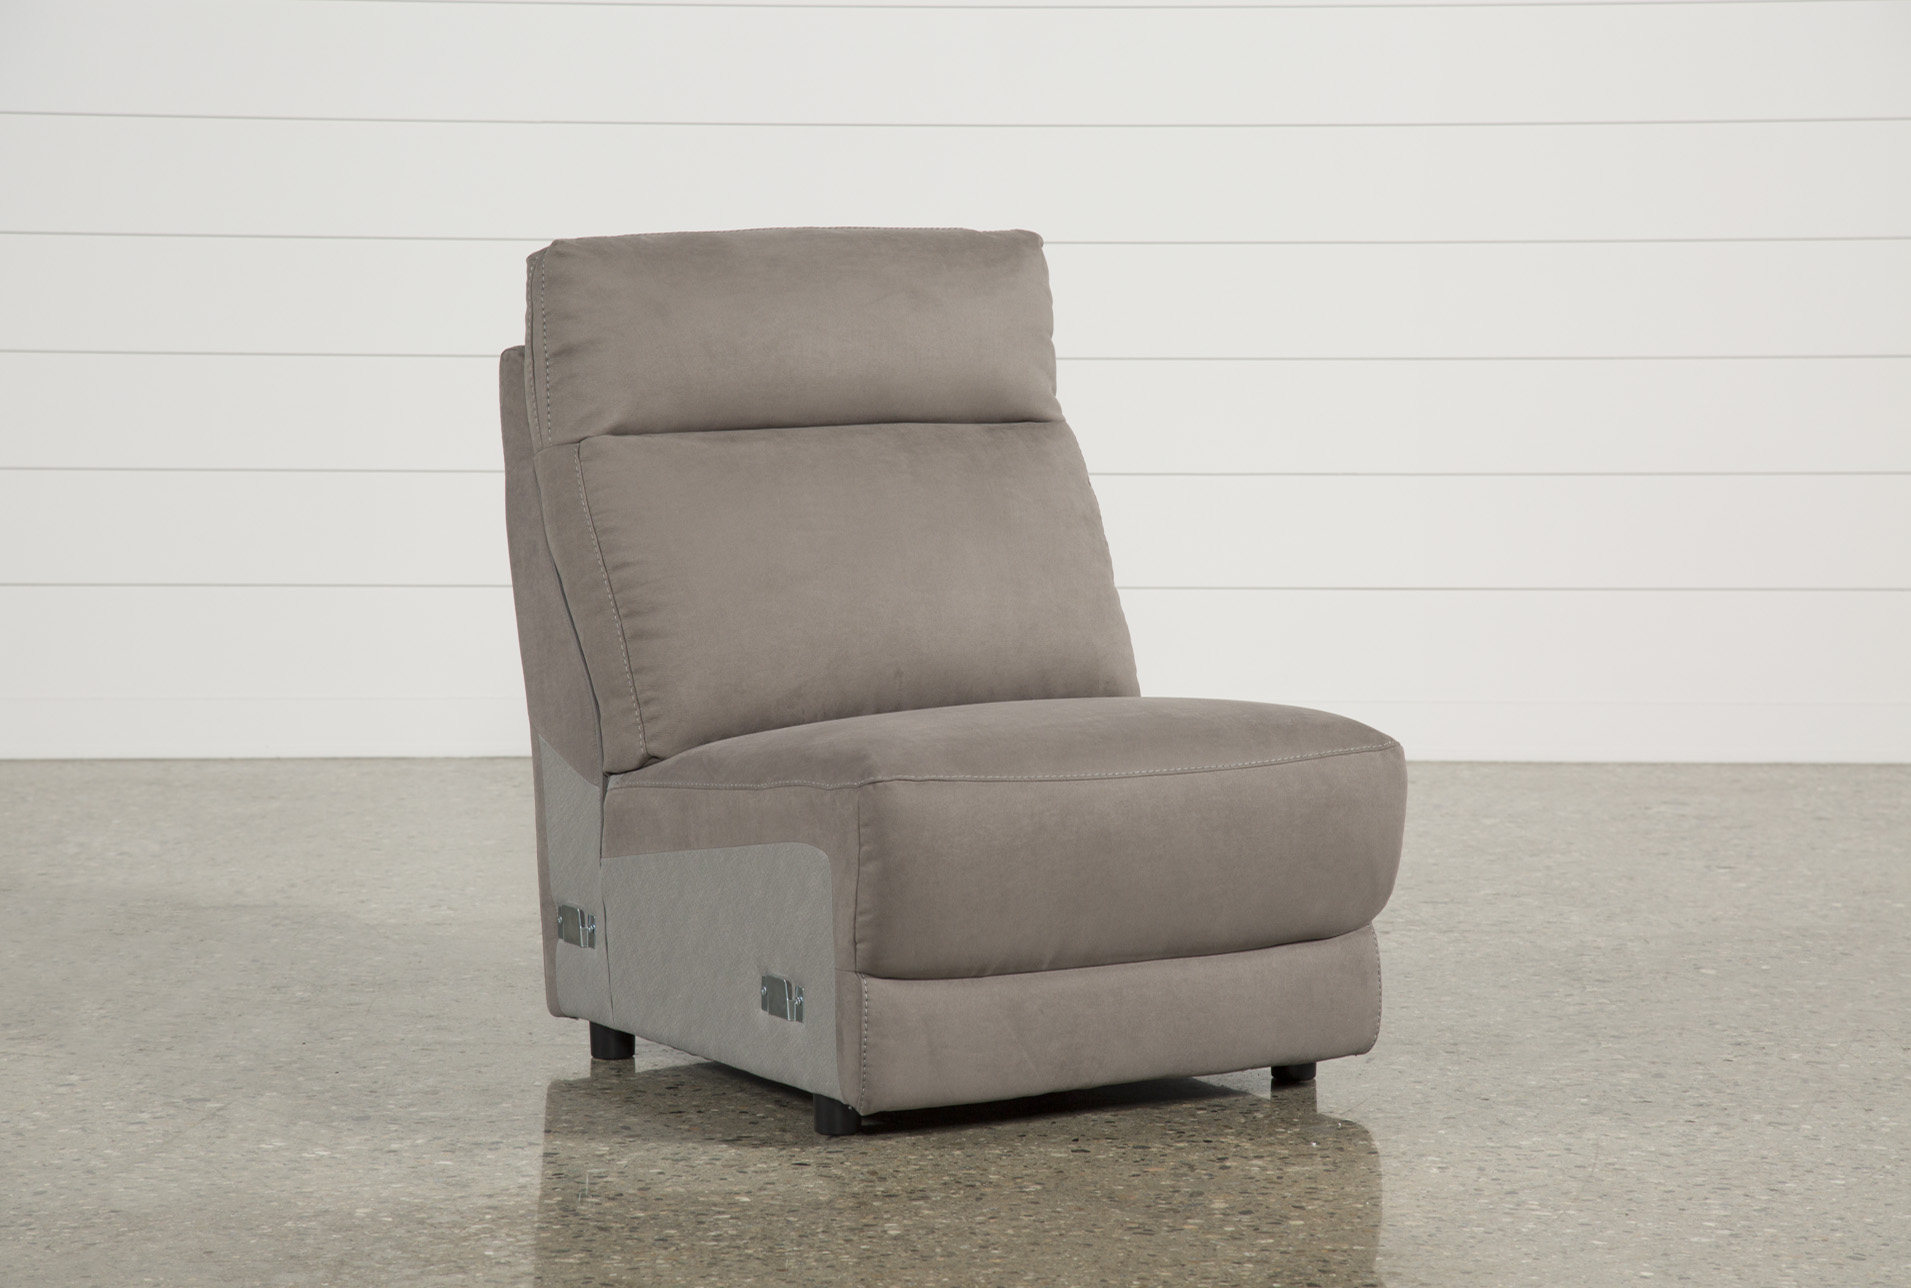 Incroyable Kerwin Dark Grey Armless Chair (Qty: 1) Has Been Successfully Added To Your  Cart.